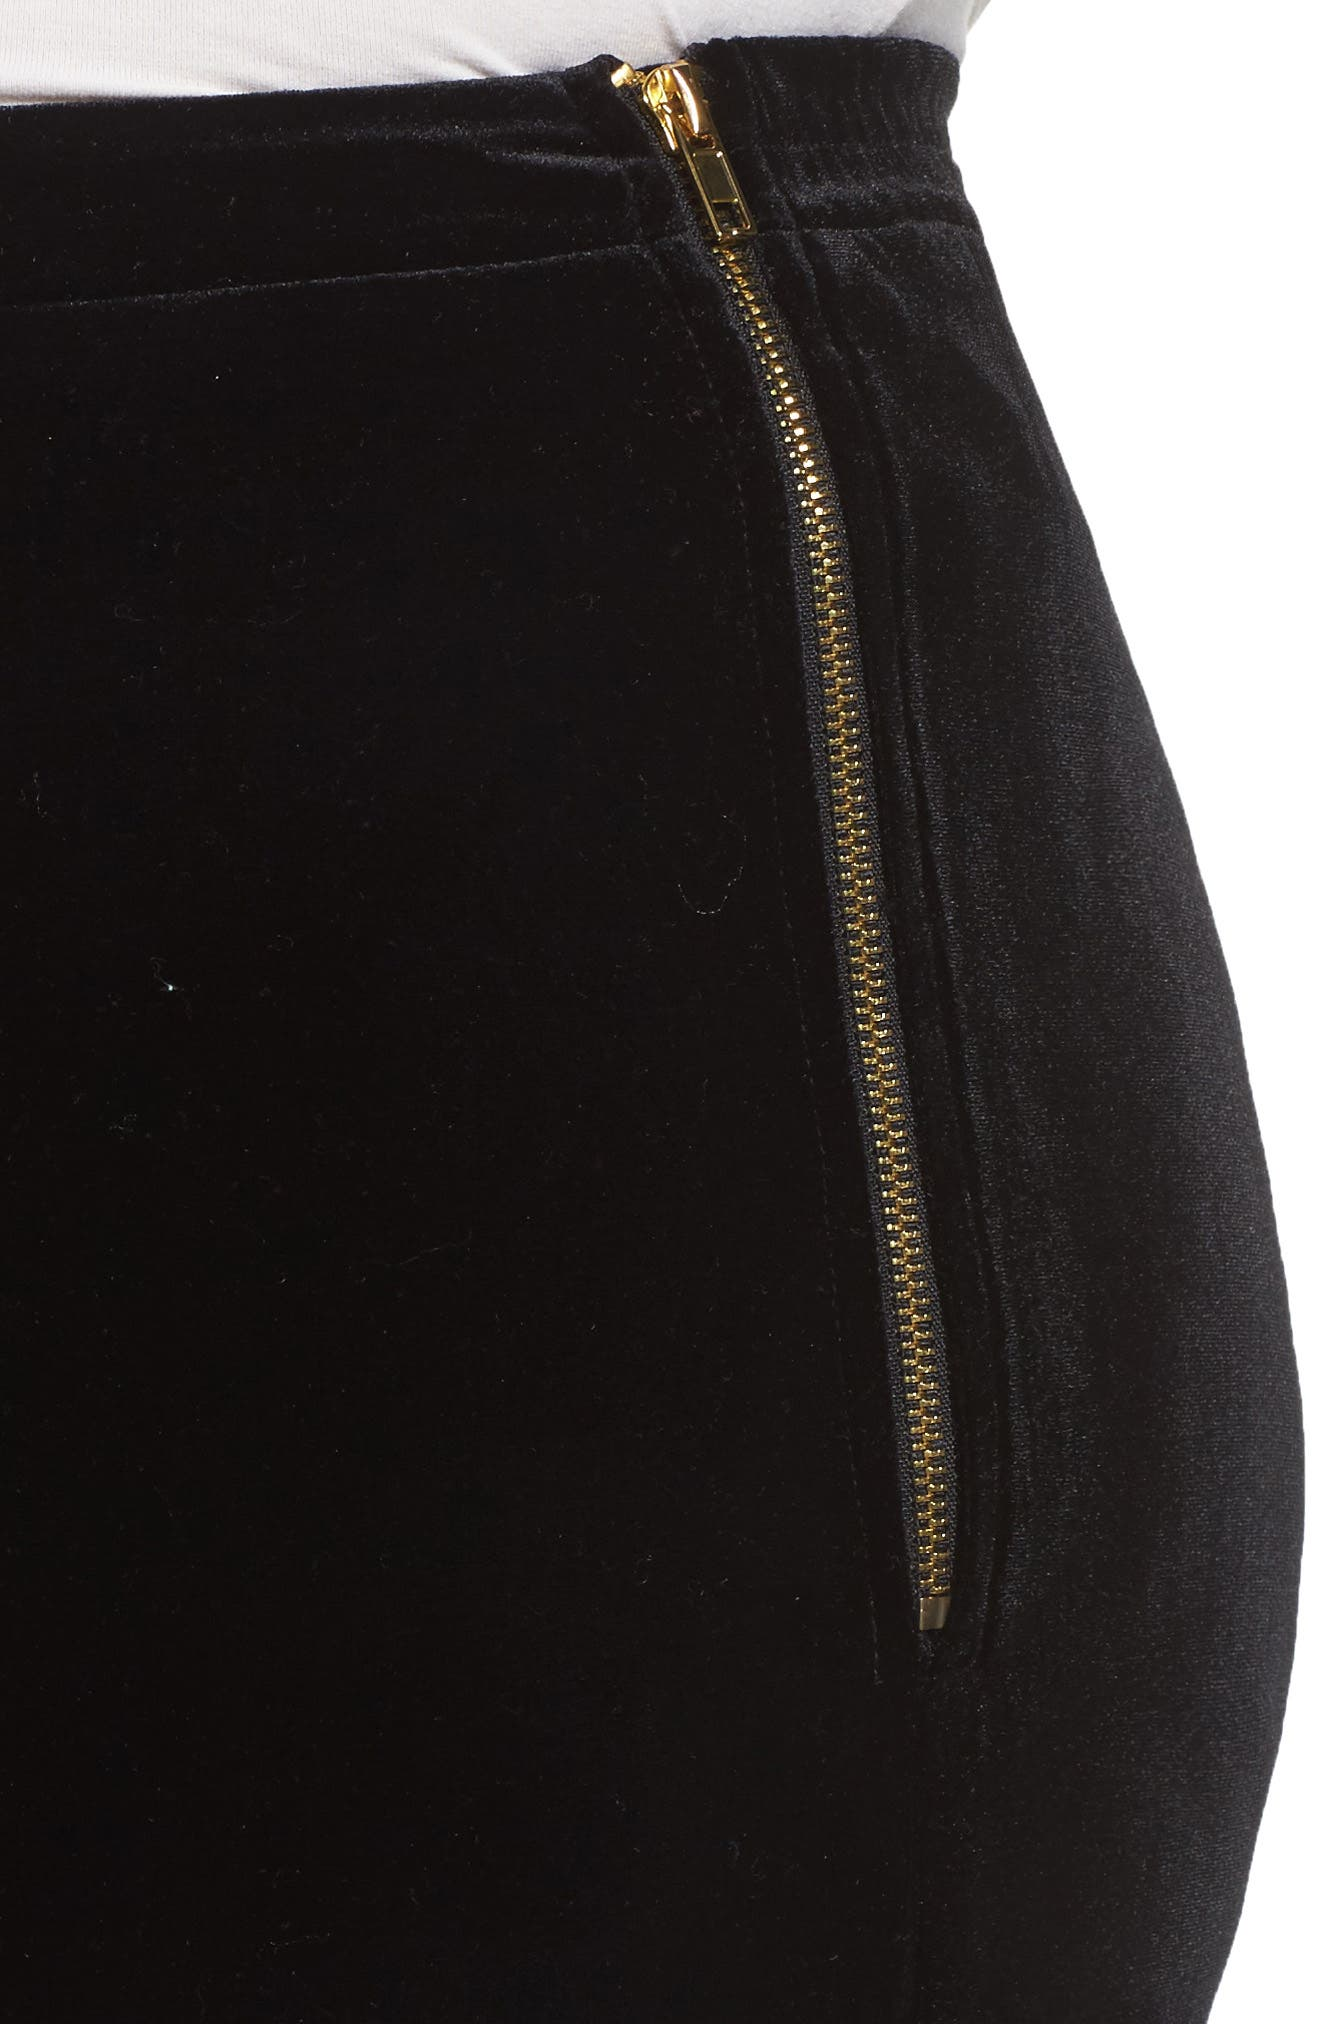 Black Velvet Trousers,                             Alternate thumbnail 4, color,                             001